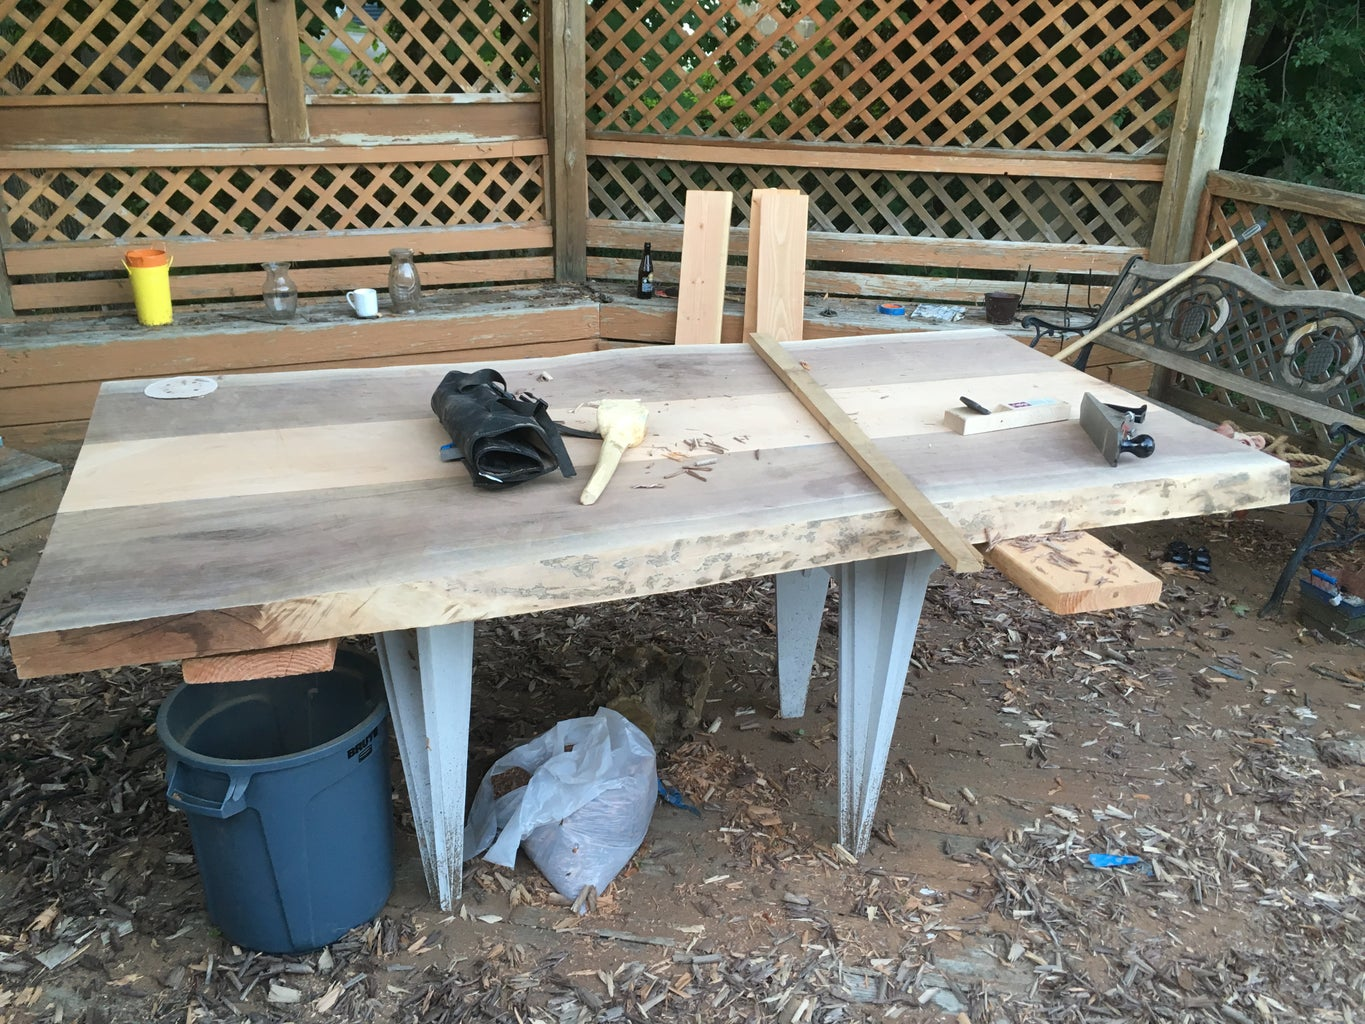 Flattening the Table Top